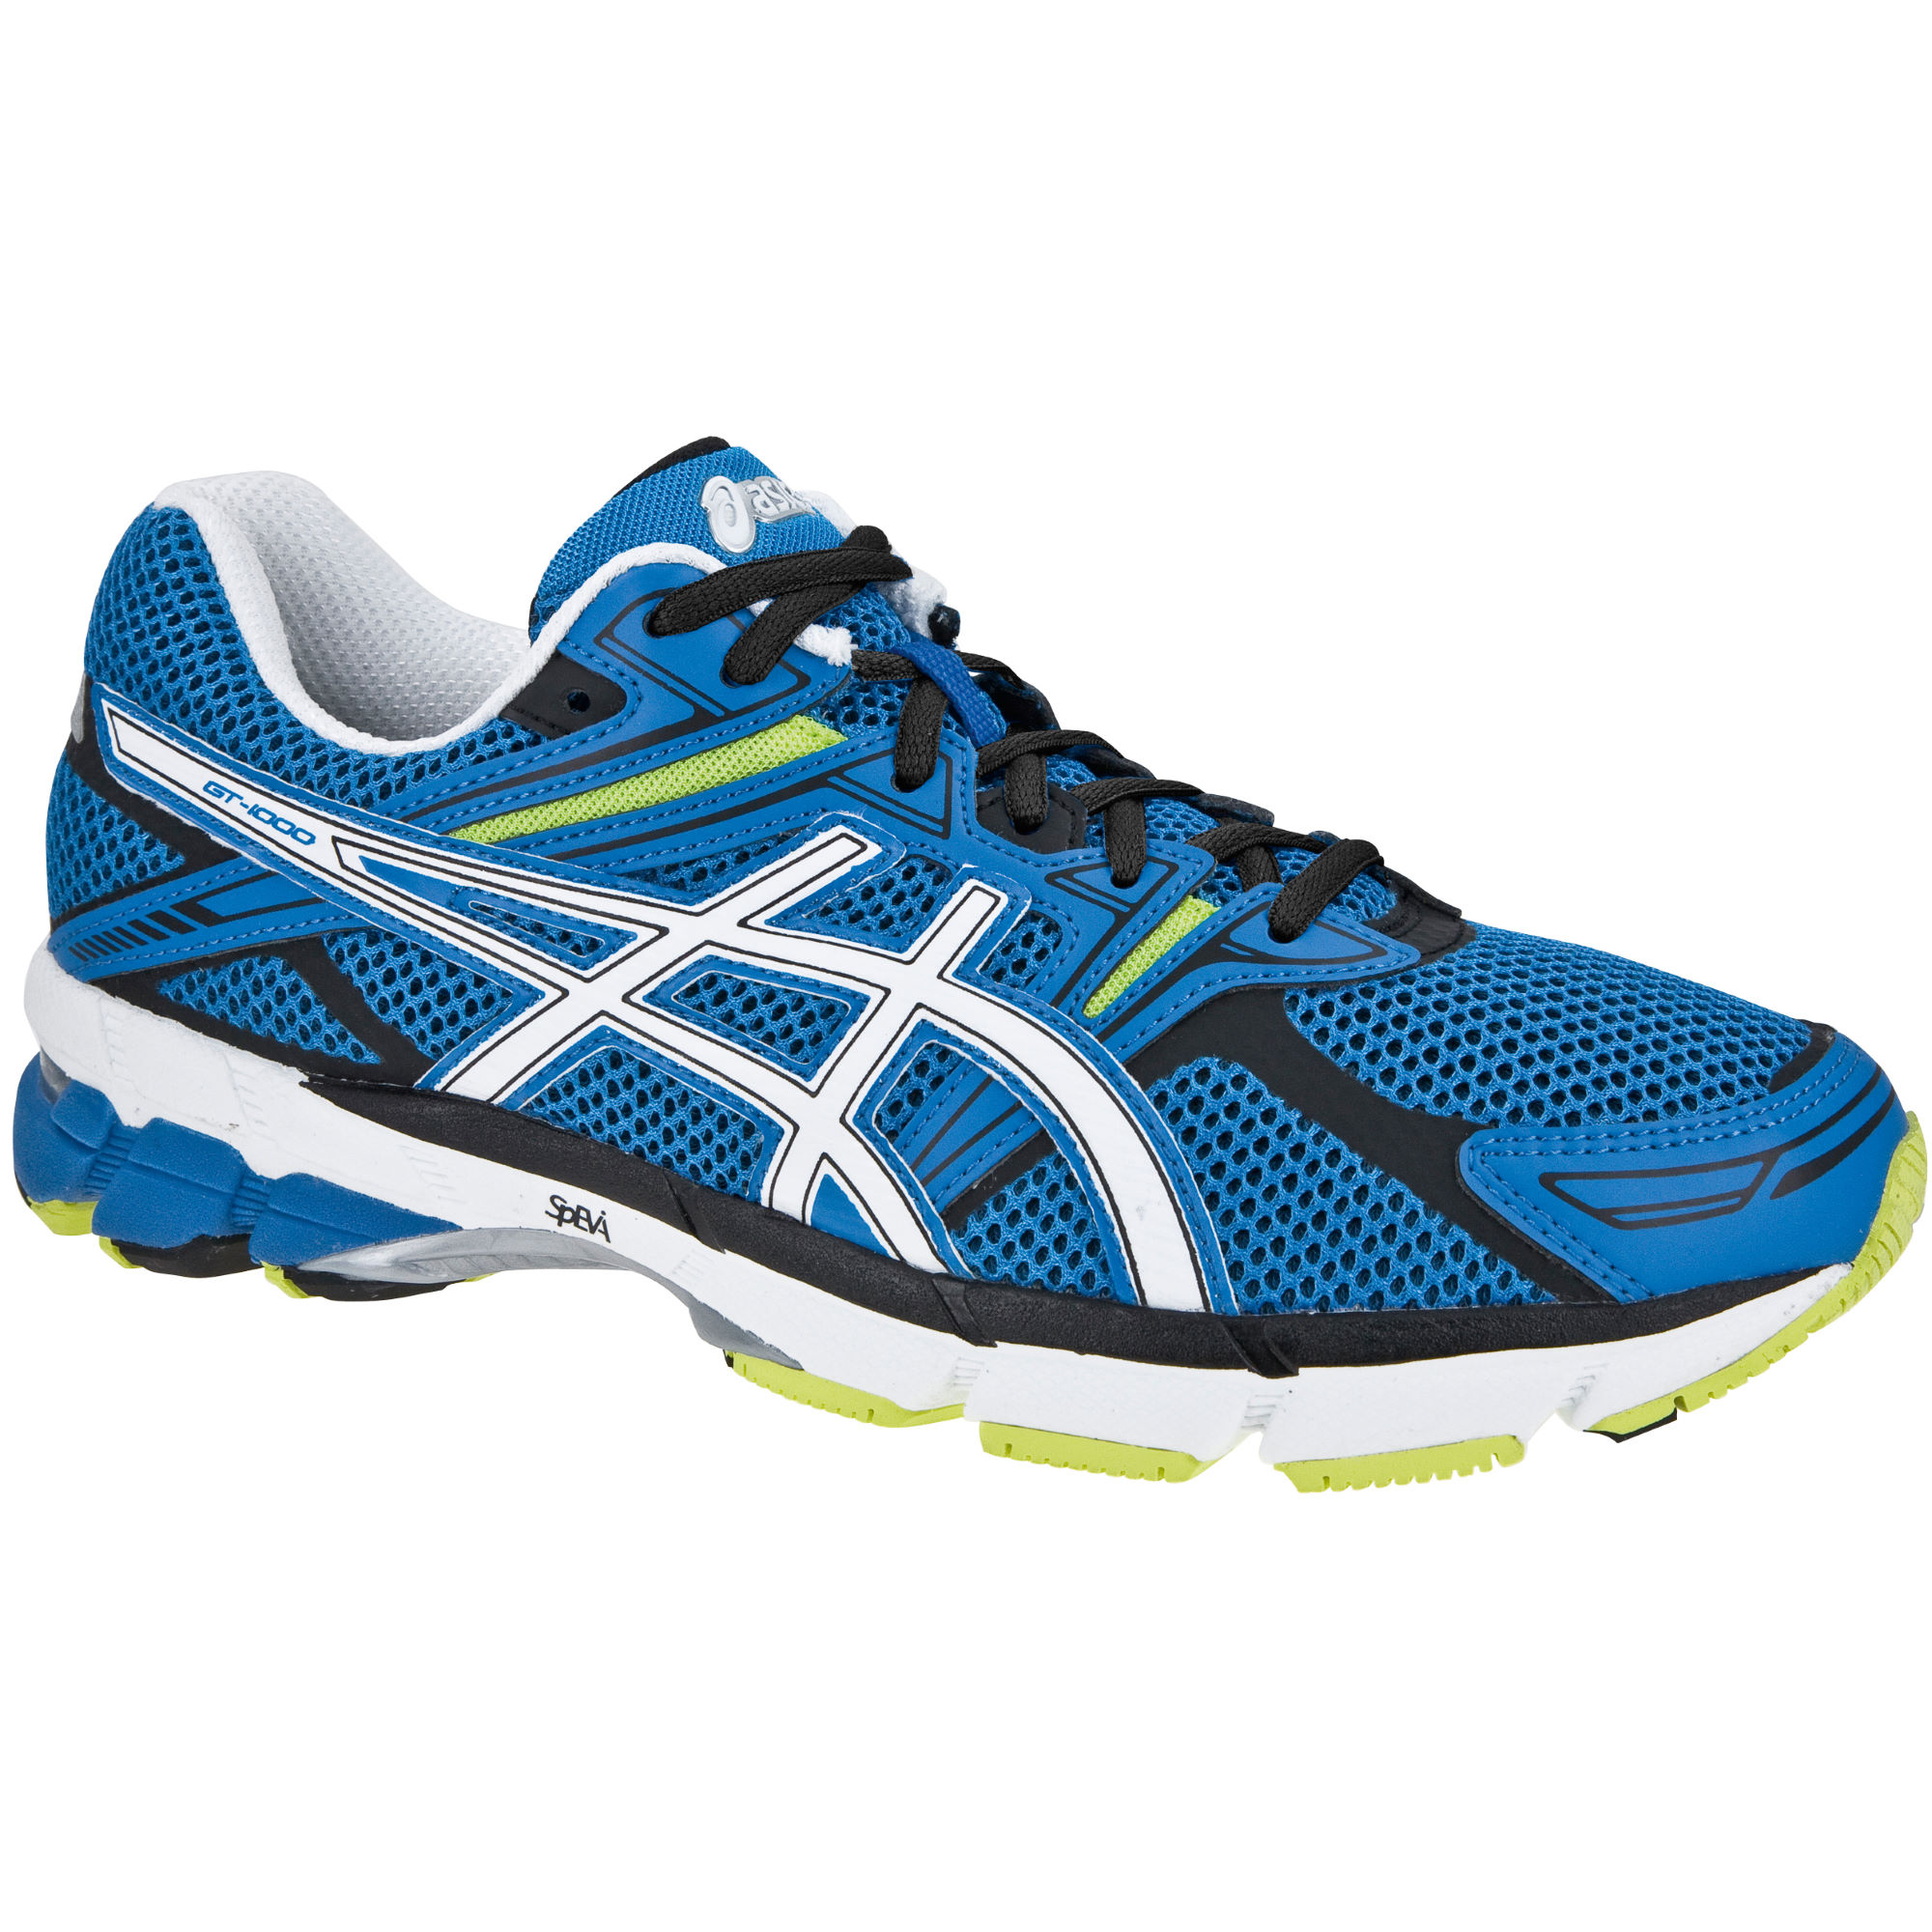 wiggle asics gt 1000 shoes stability running shoes. Black Bedroom Furniture Sets. Home Design Ideas